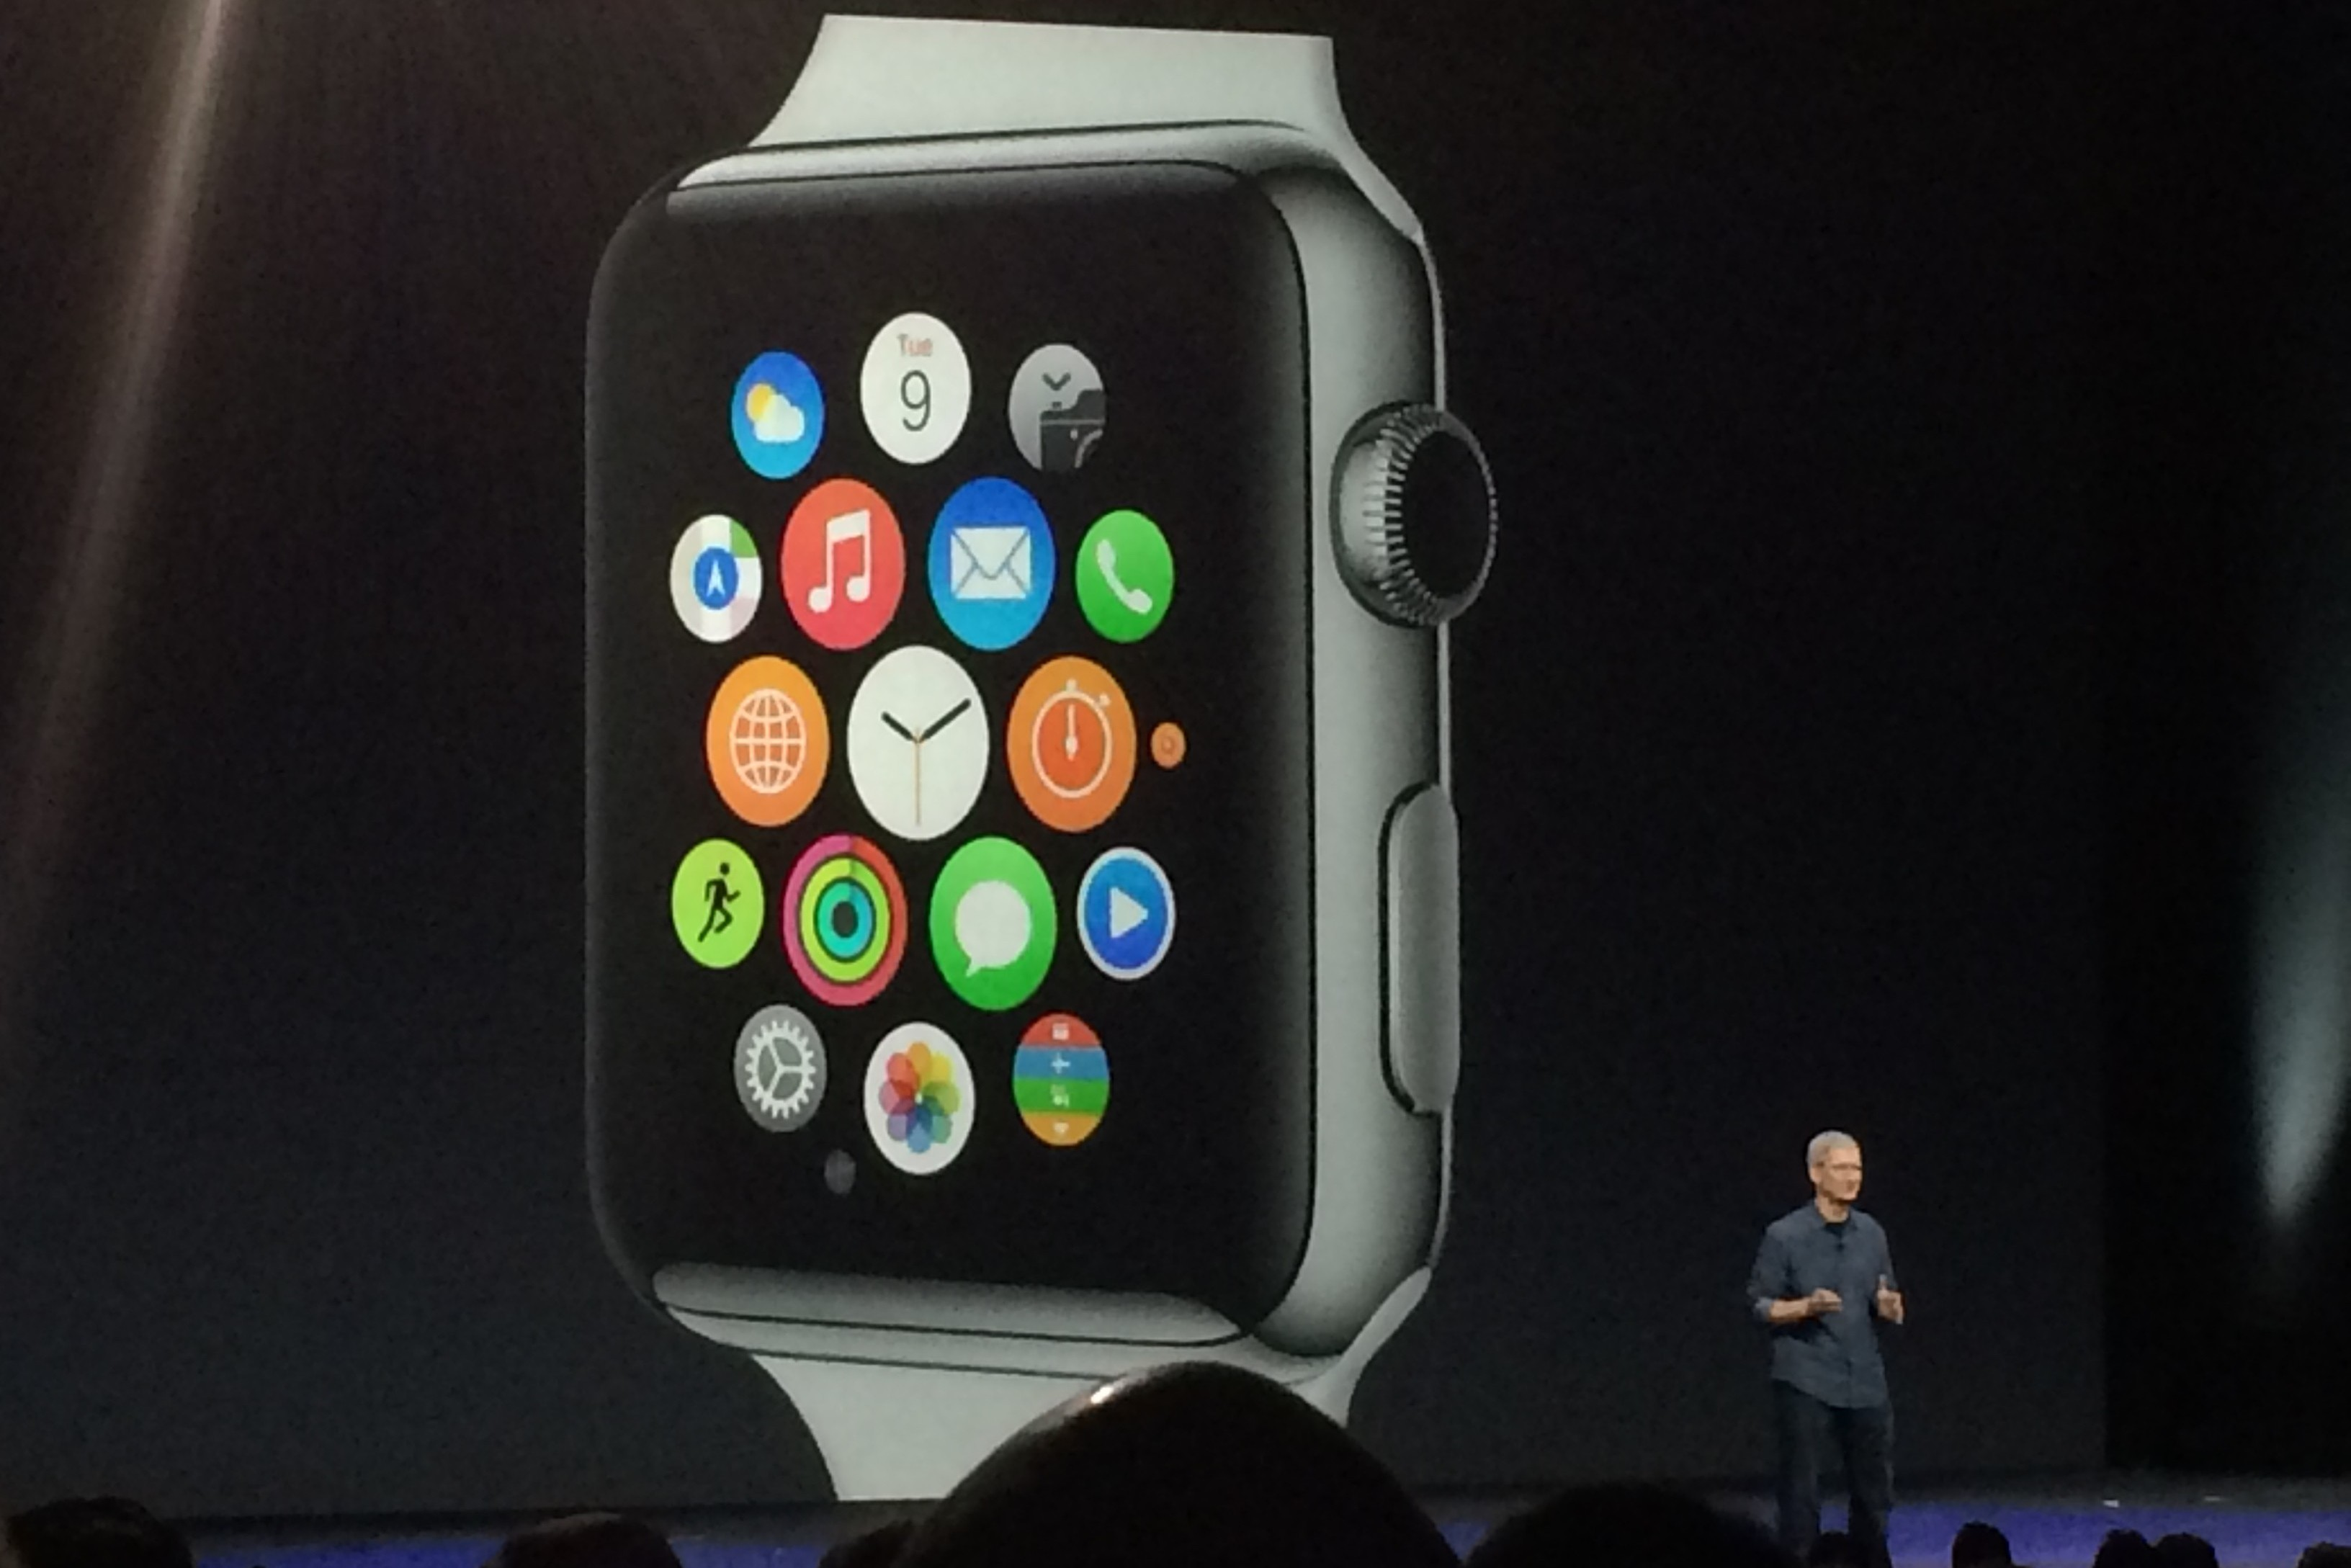 Keynote Apple Septembre 2015 : les nouveautés de l'Apple Watch